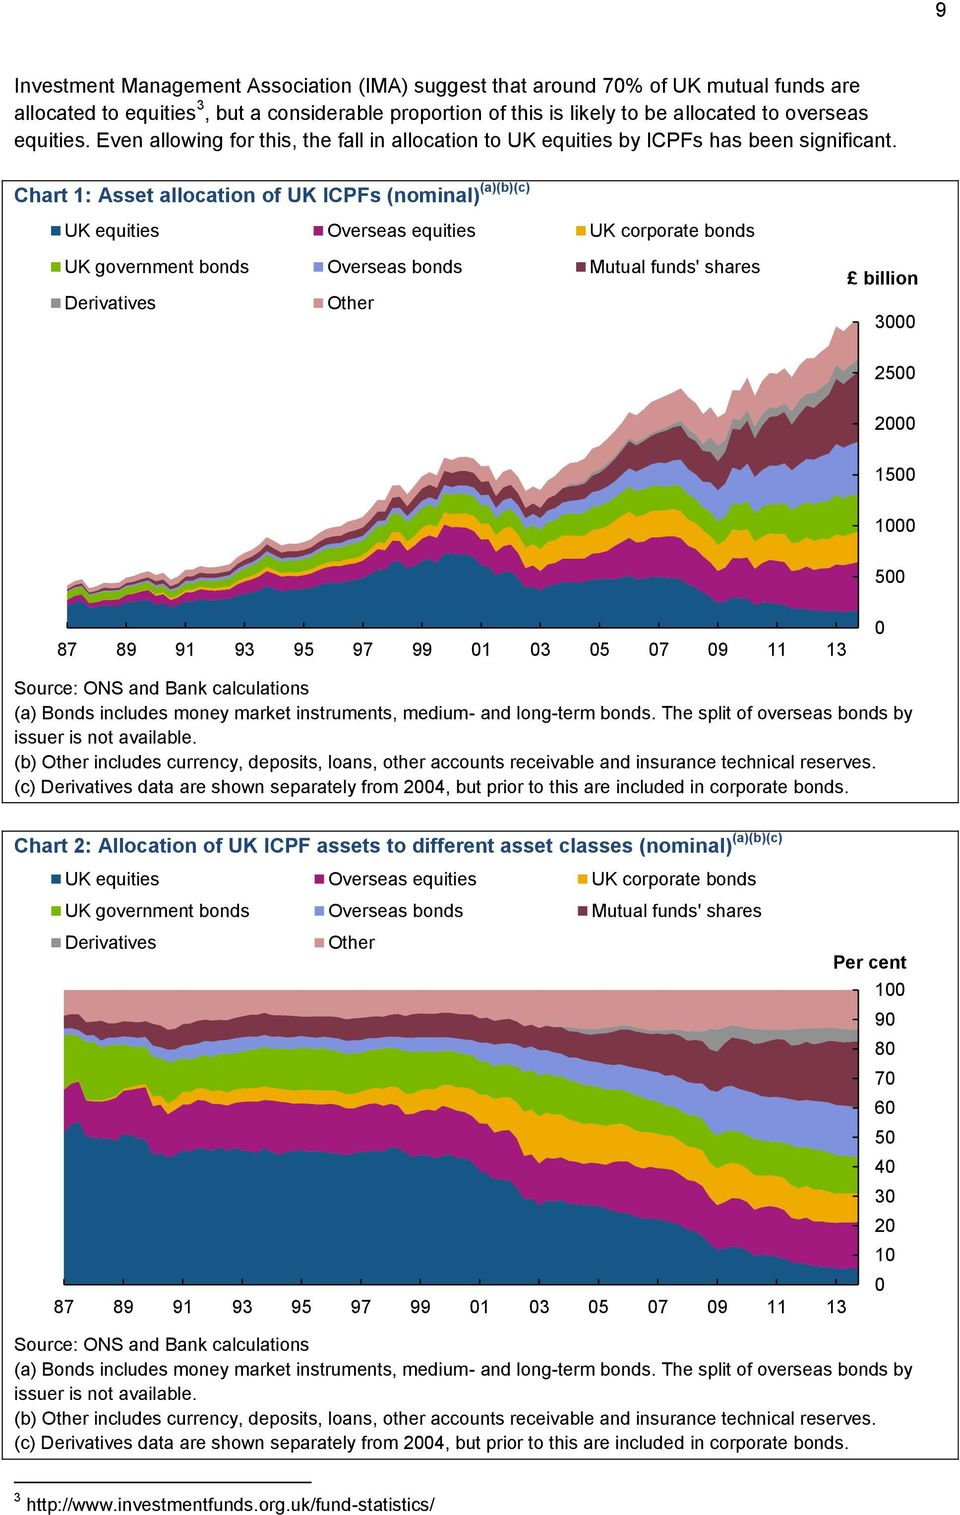 Chart 1: Asset allocation of UK ICPFs (nominal) (a)(b)(c) UK equities Overseas equities UK corporate bonds UK government bonds Overseas bonds Mutual funds' shares Derivatives Other billion 3000 2500